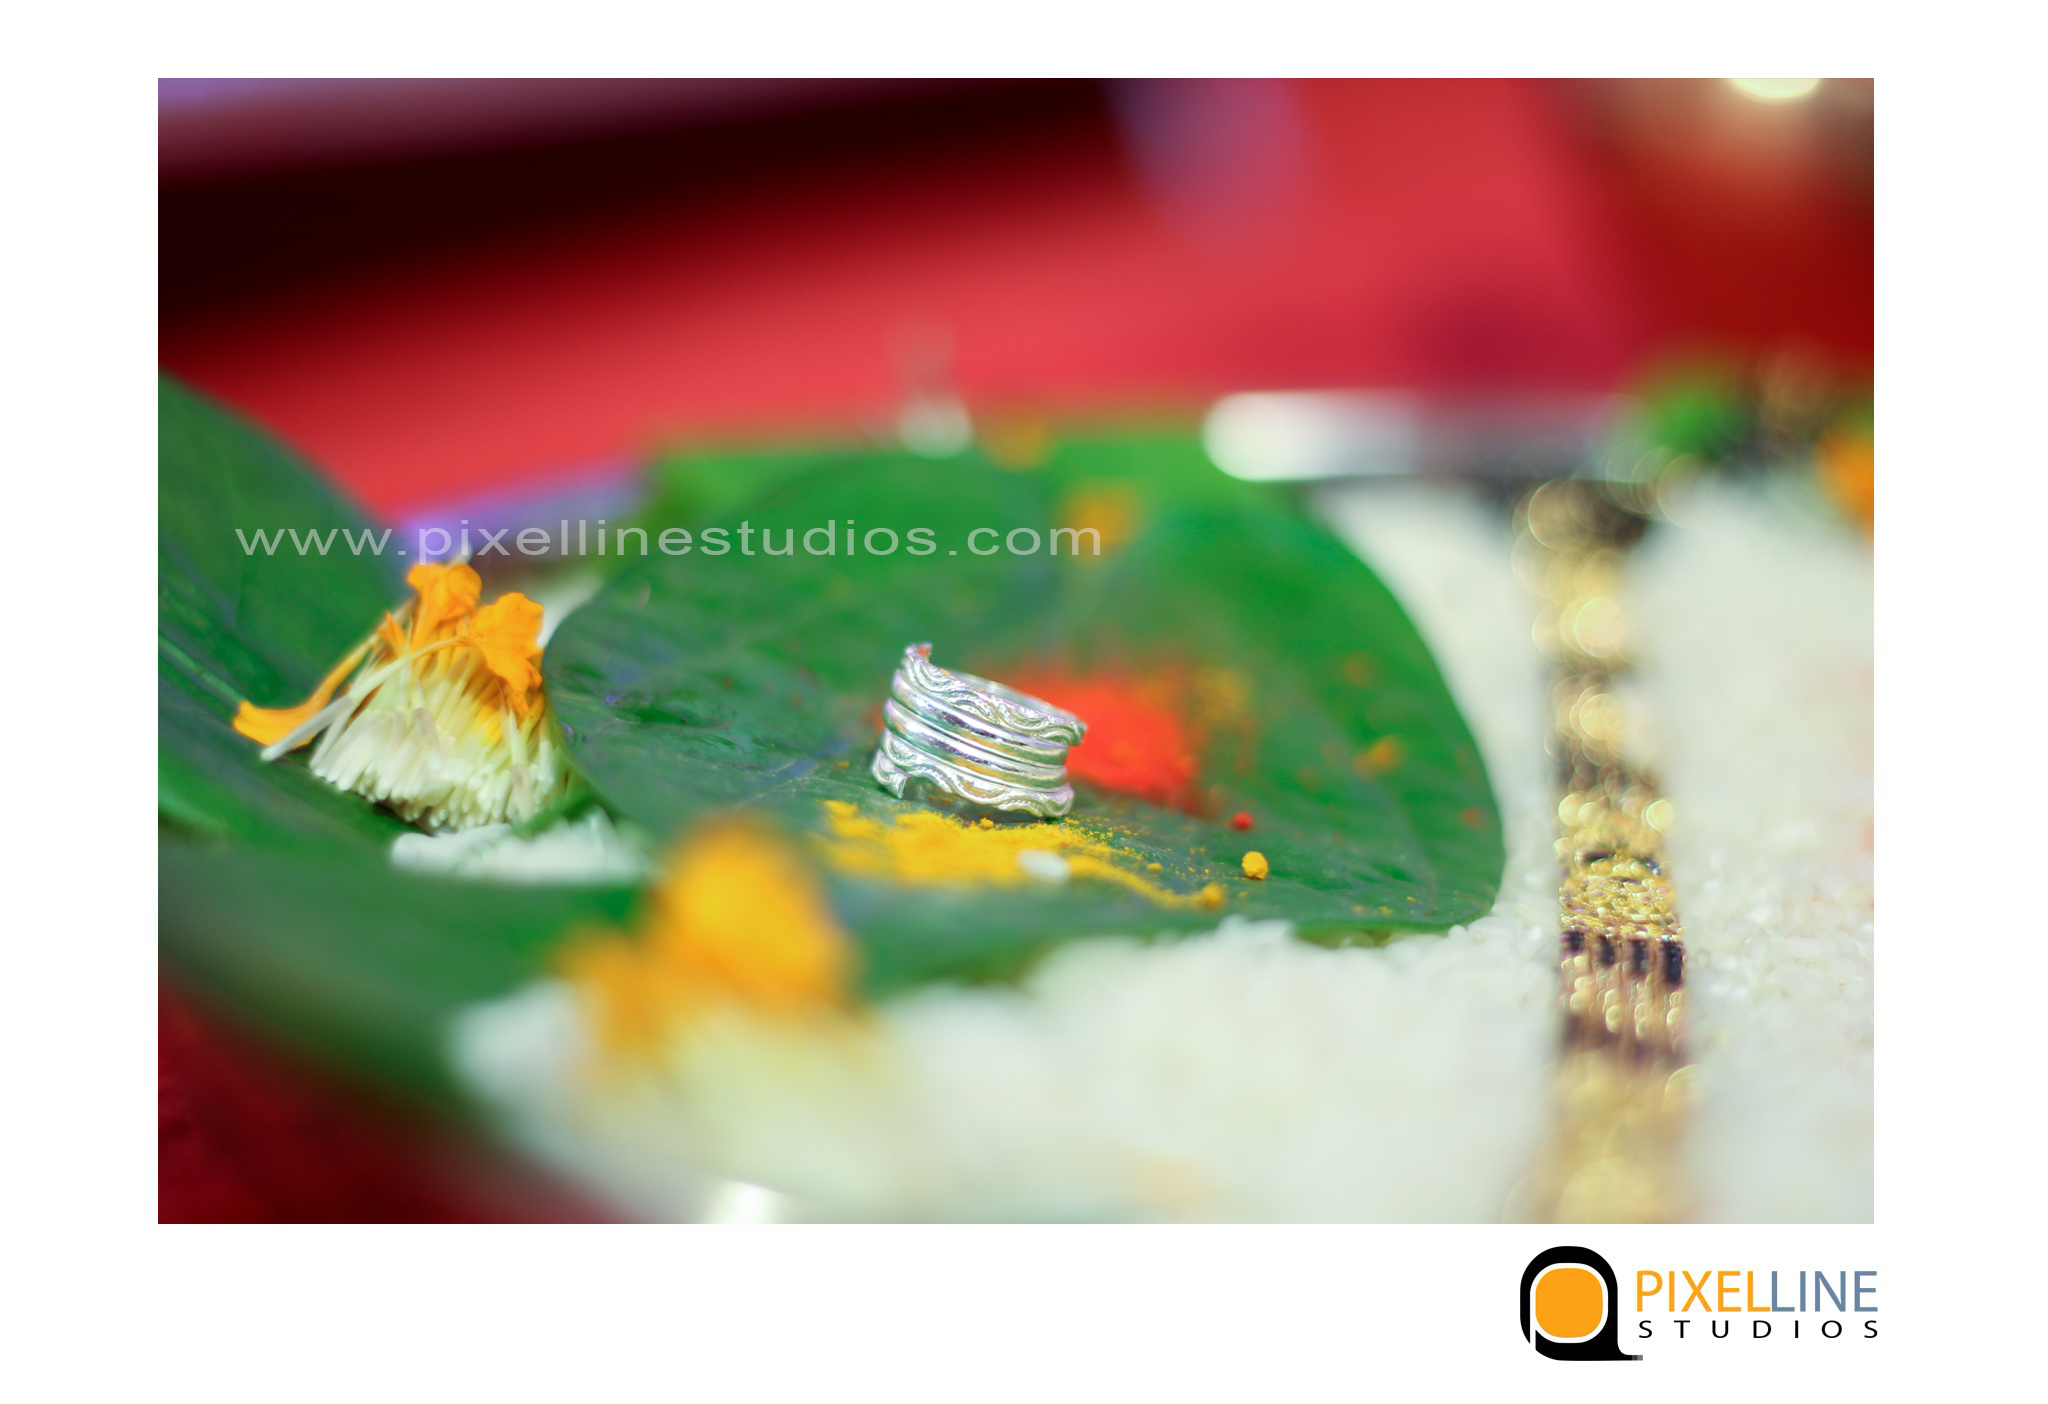 wedding photographers in pune charges_pixellinestudios